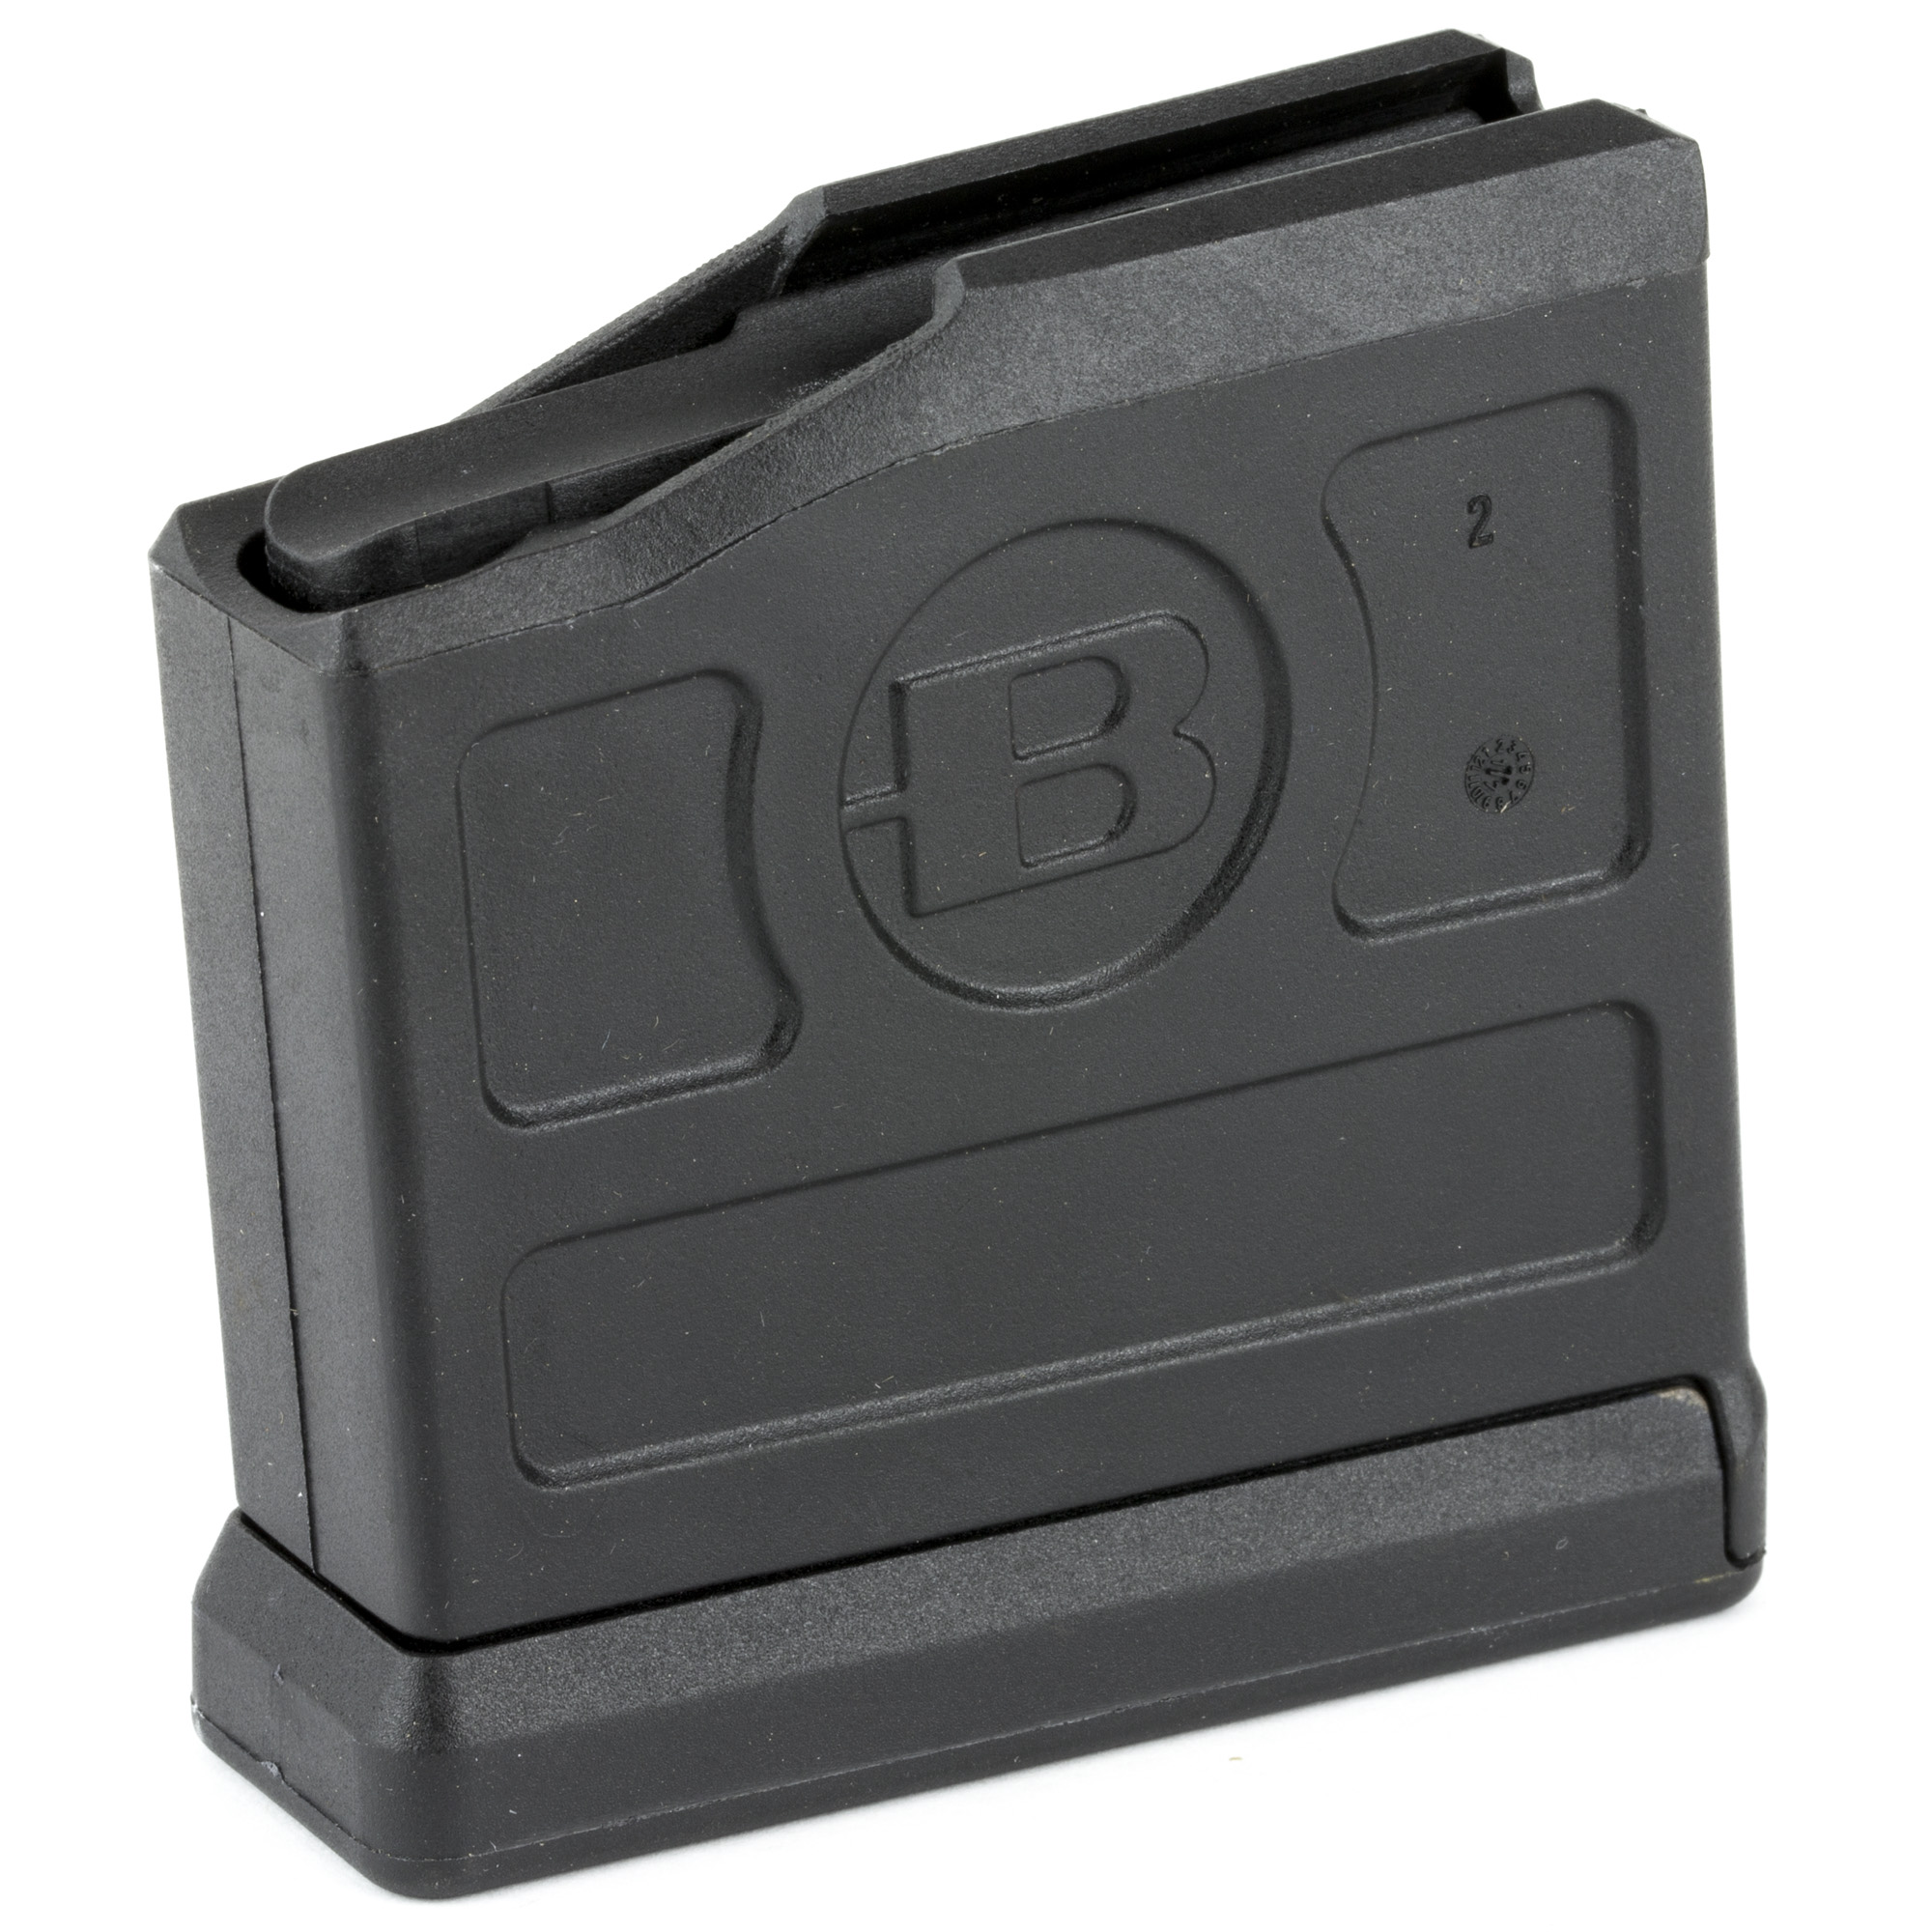 The Bergara AICS magazine is the perfect replacement magazine for your short-action Bergara rifle. This magazine features a polymer body and base plate and is capable of holding 5 rounds of .308 Winchester ammo.